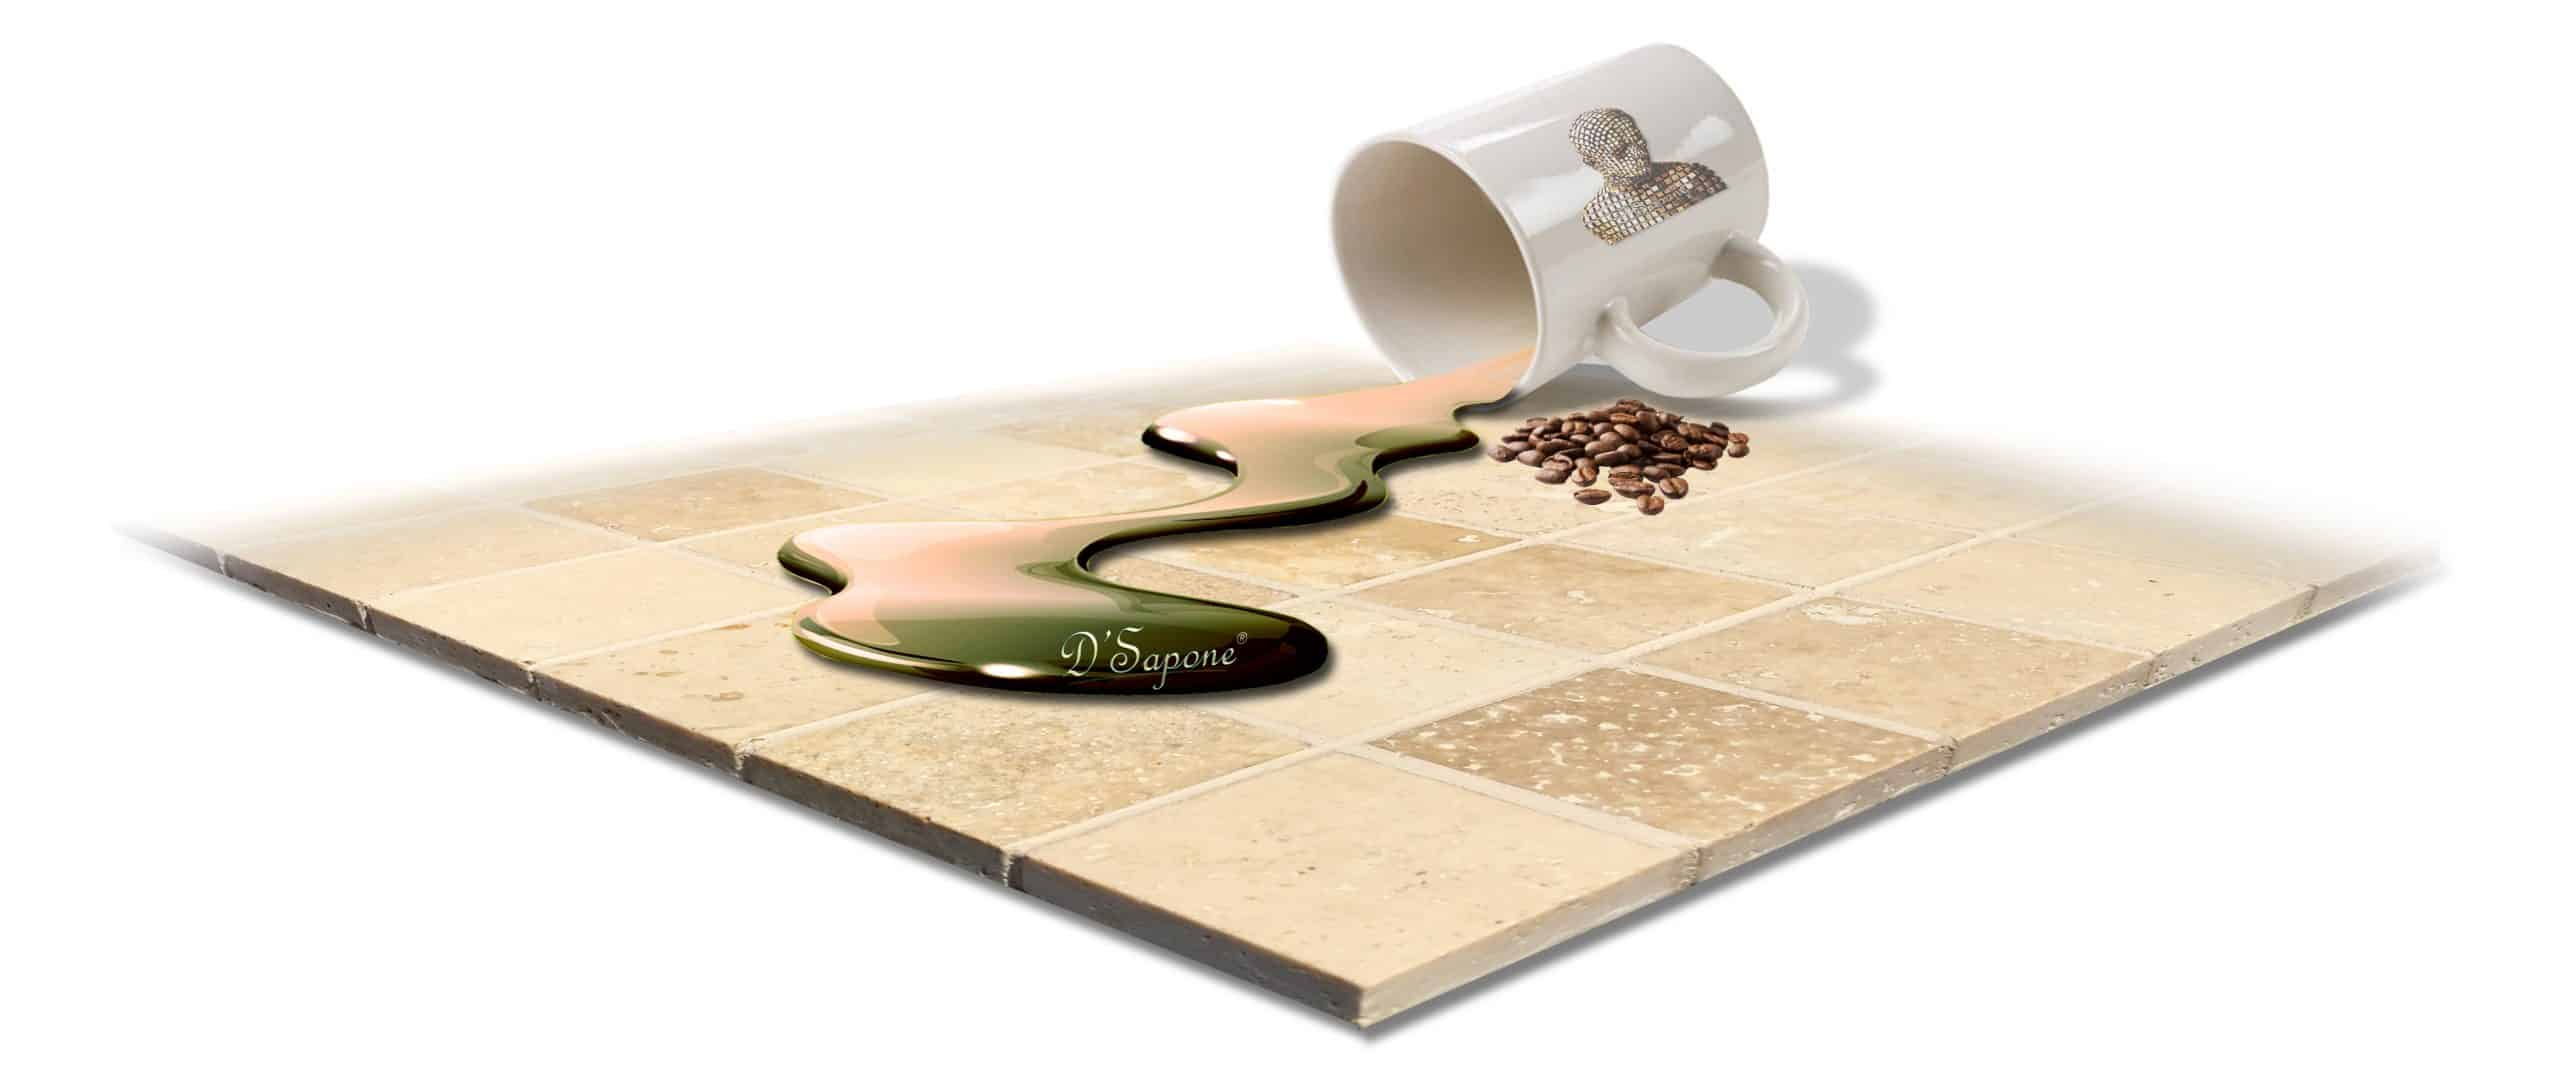 Caponi DSapone grout sealer coffee spilling